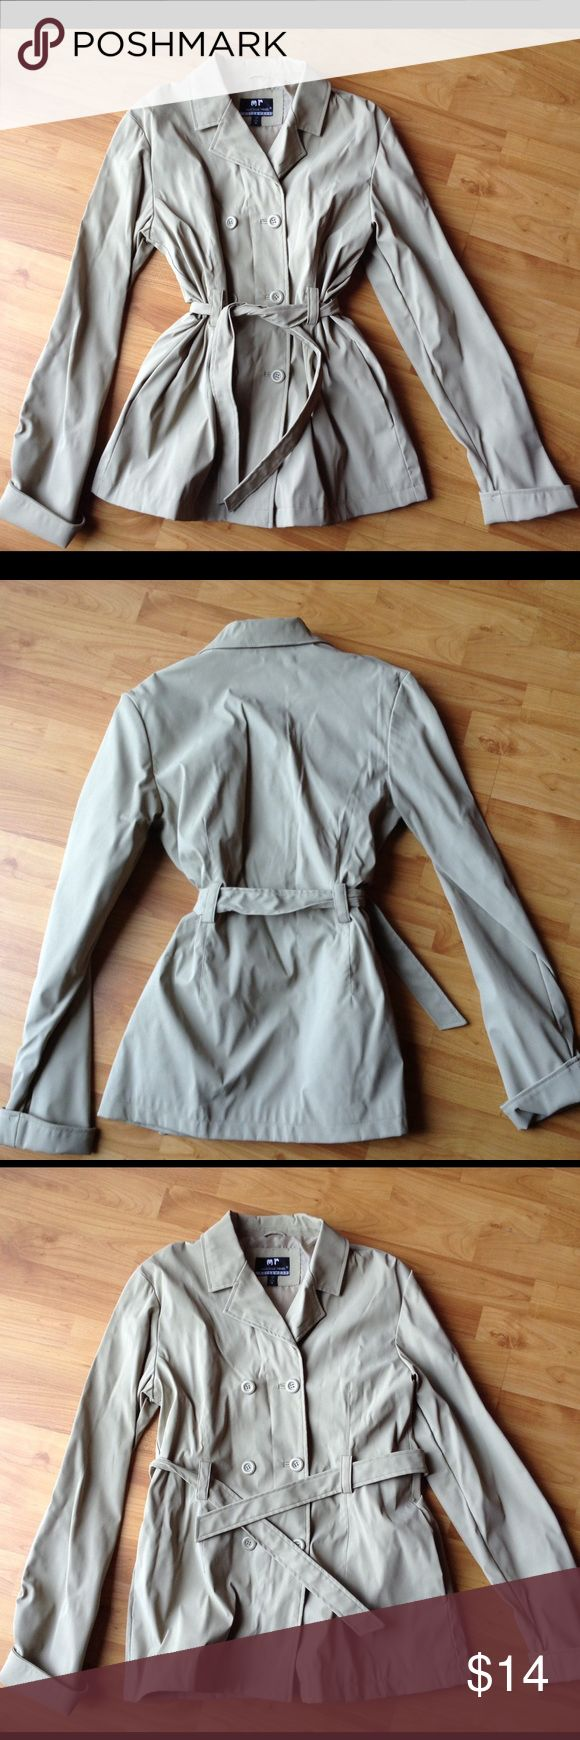 Ladies Raincoat Like New; Ladies Raincoat in a polyvinyl material Jackets & Coats